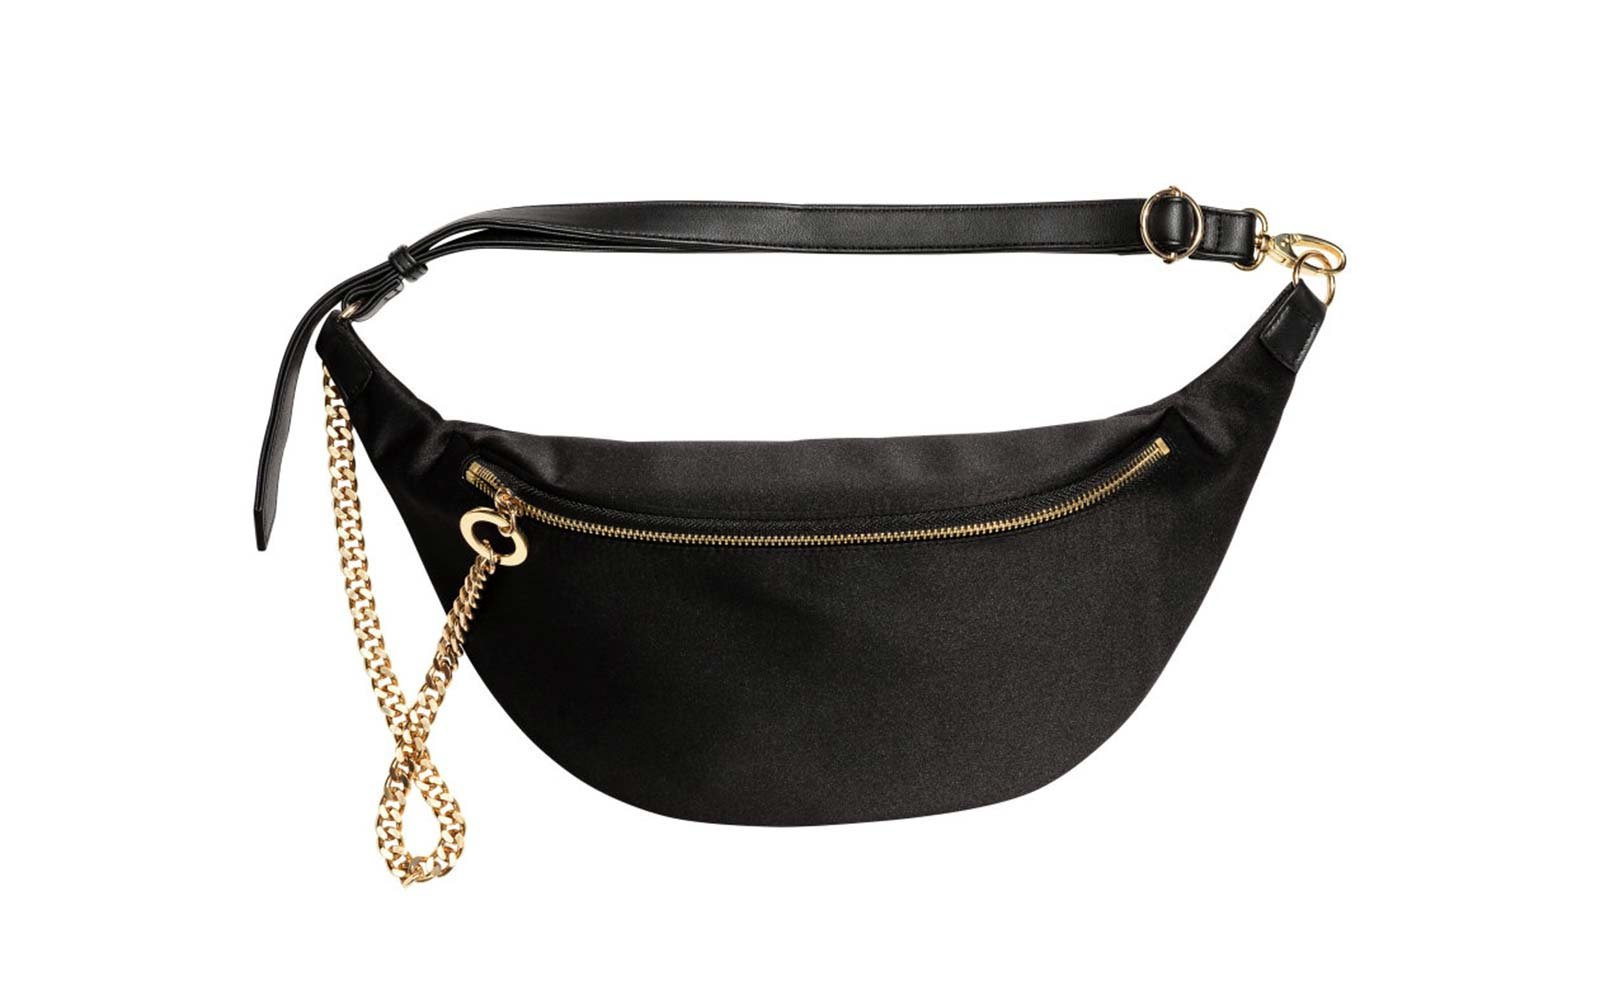 H&M fanny pack